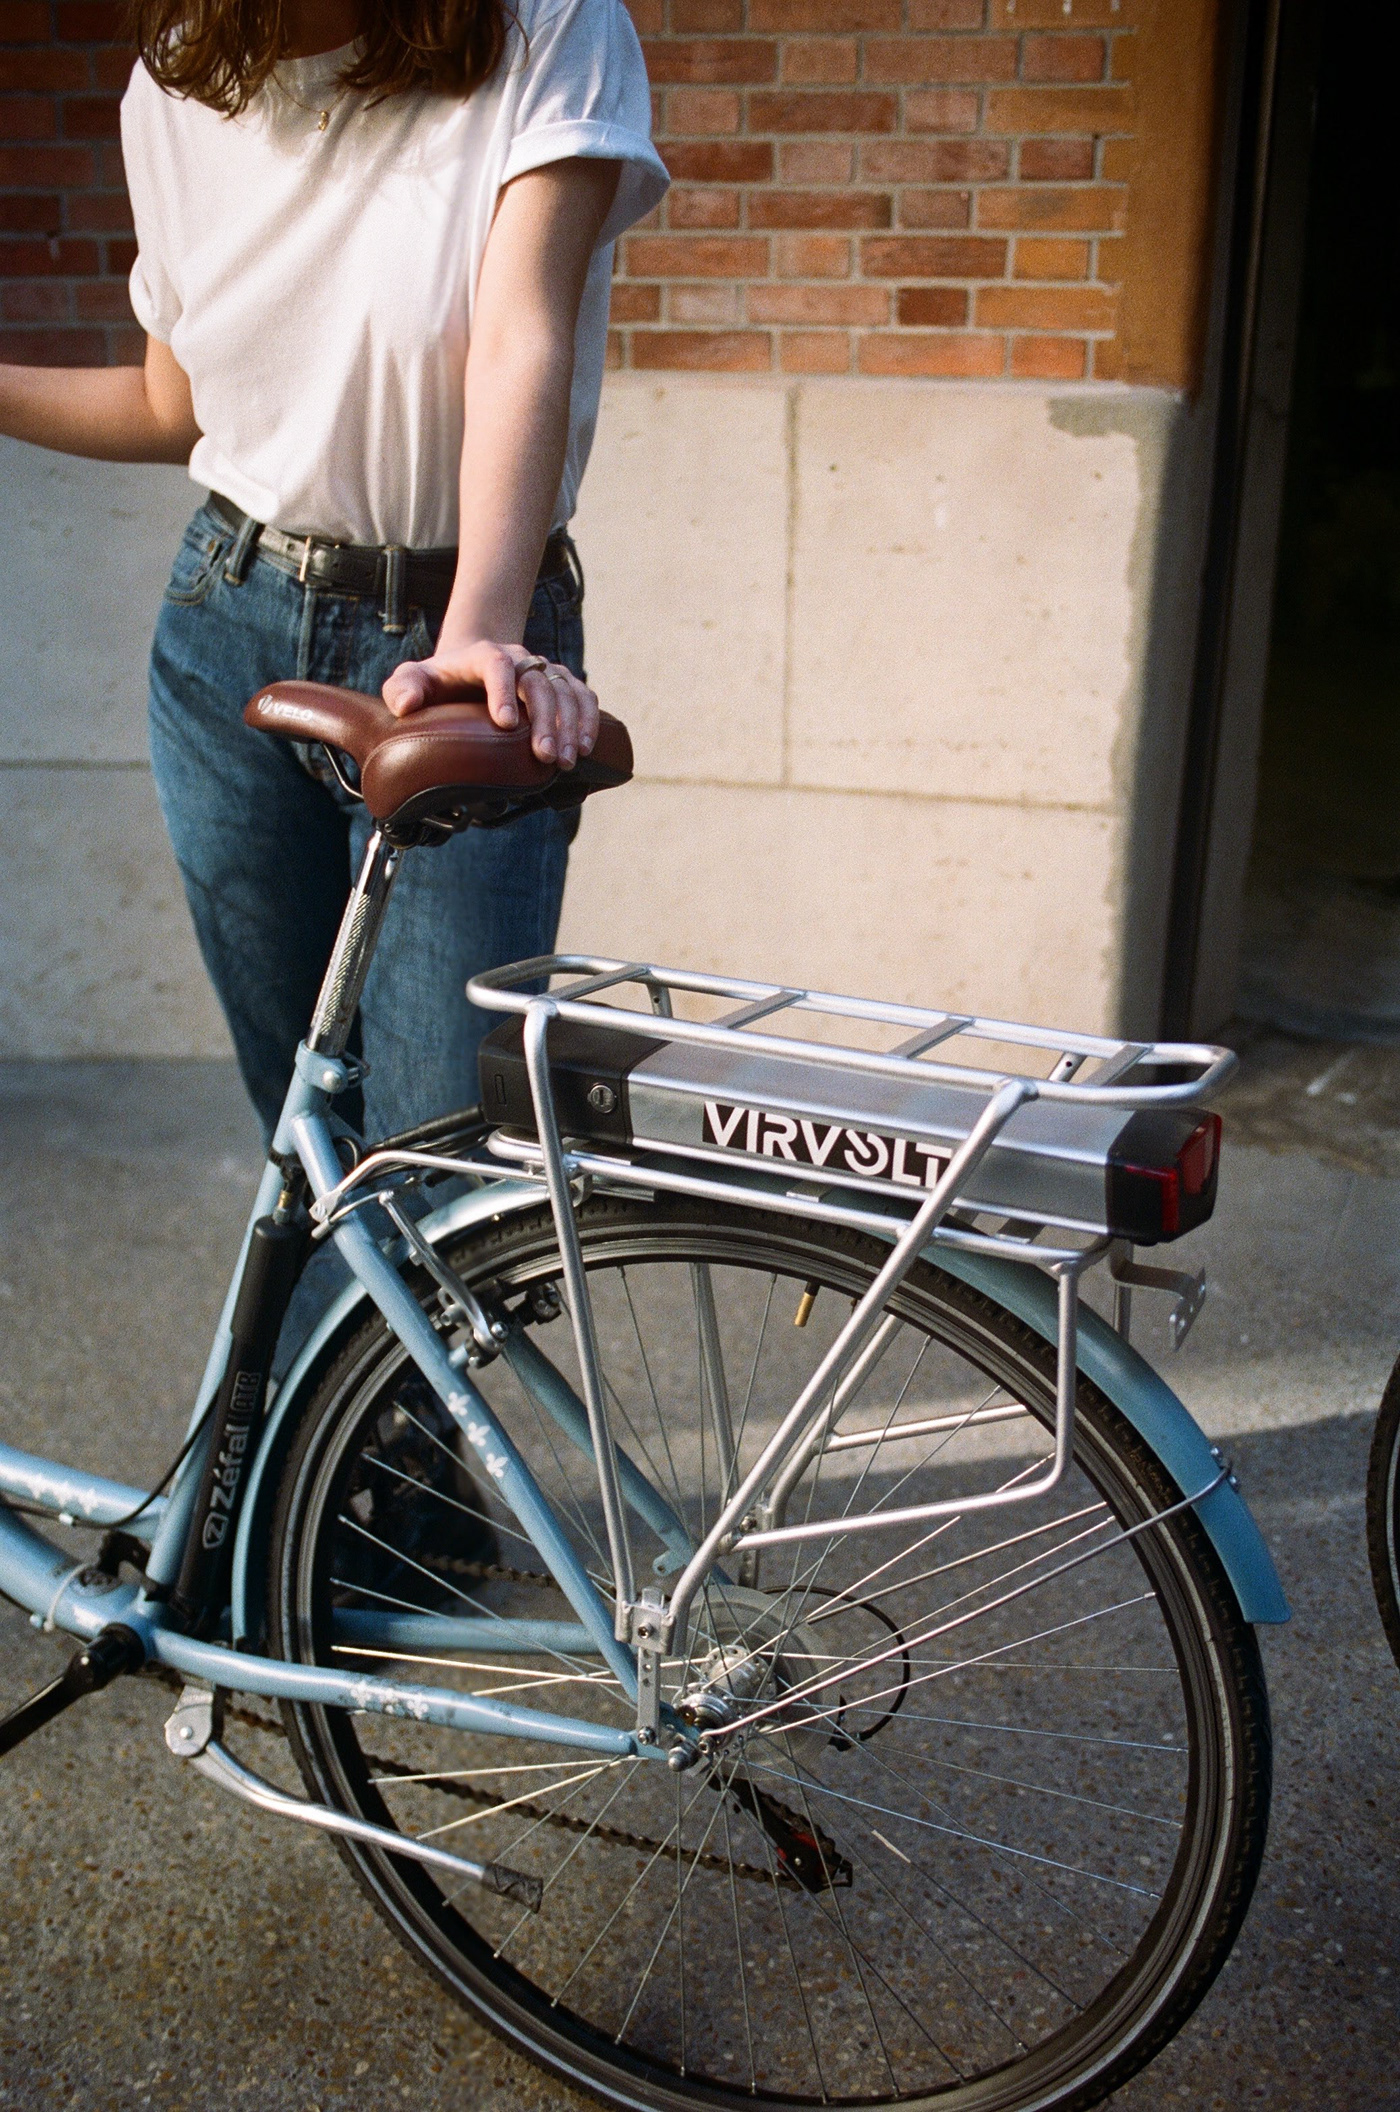 Film   Bike Startup electricity Bicycle Paris portra girls mobility france